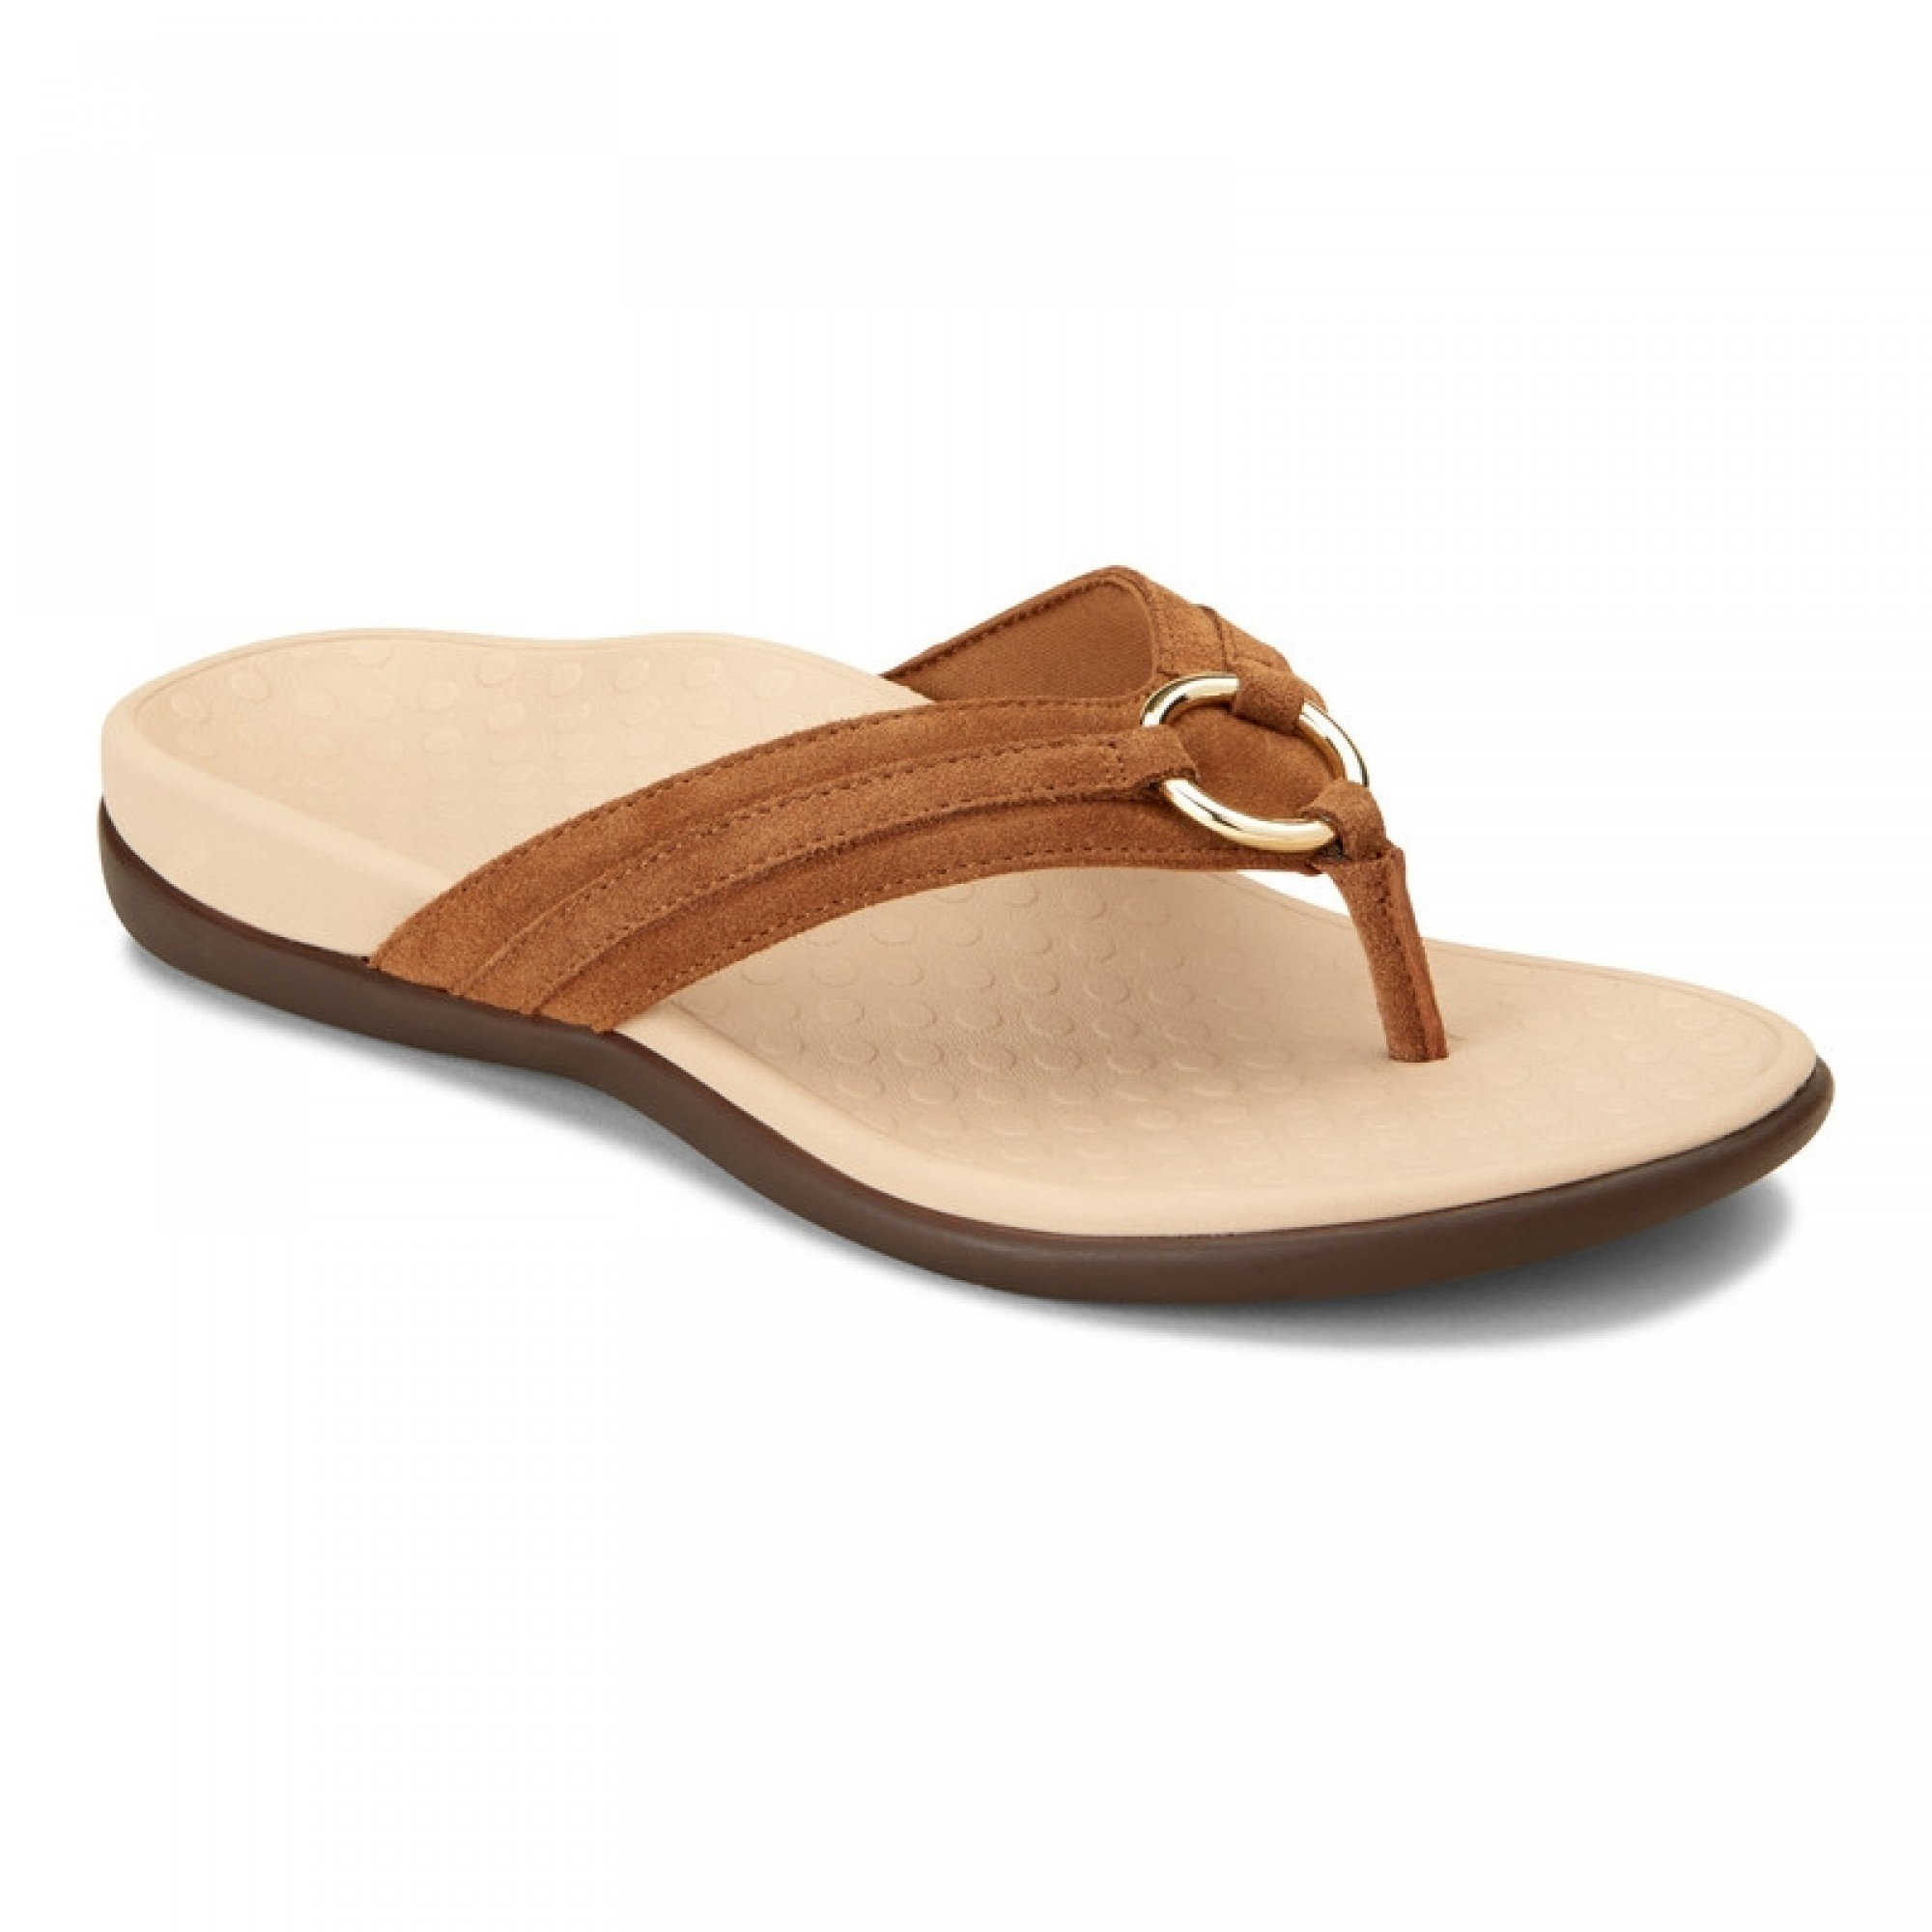 Vionic Tide Aloe Toe Post Sandal - Women's